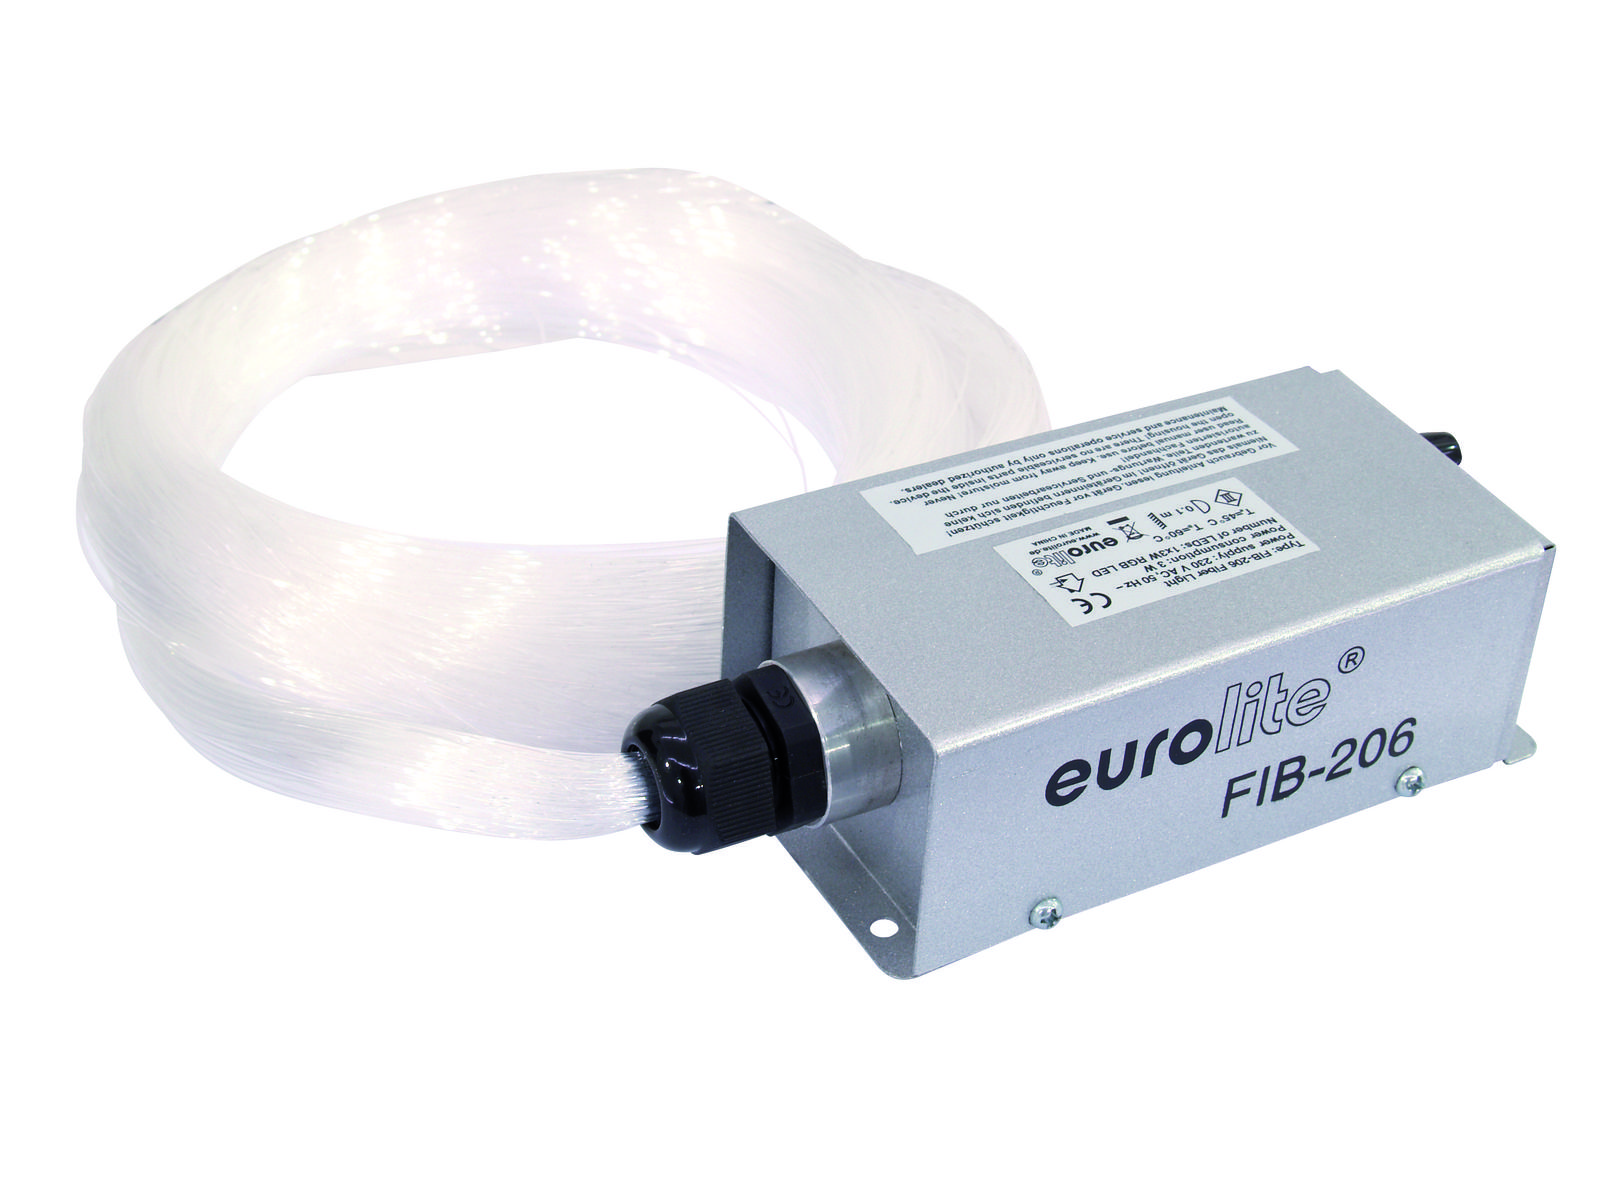 EUROLITE FIB-206 LED fiber light col. cha